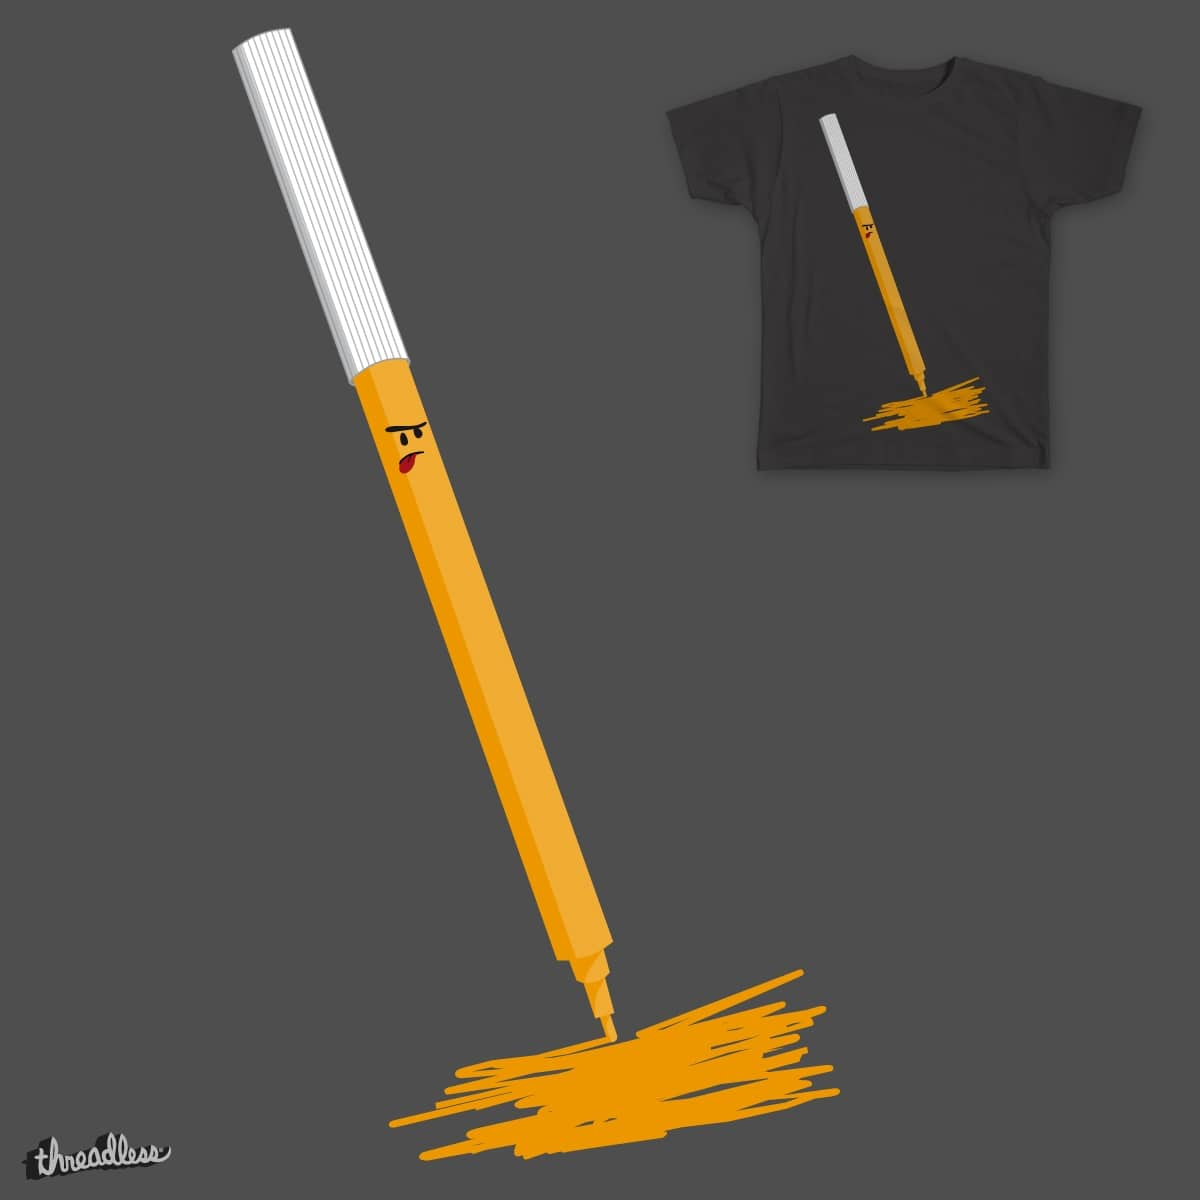 Angry pen by zarika on Threadless